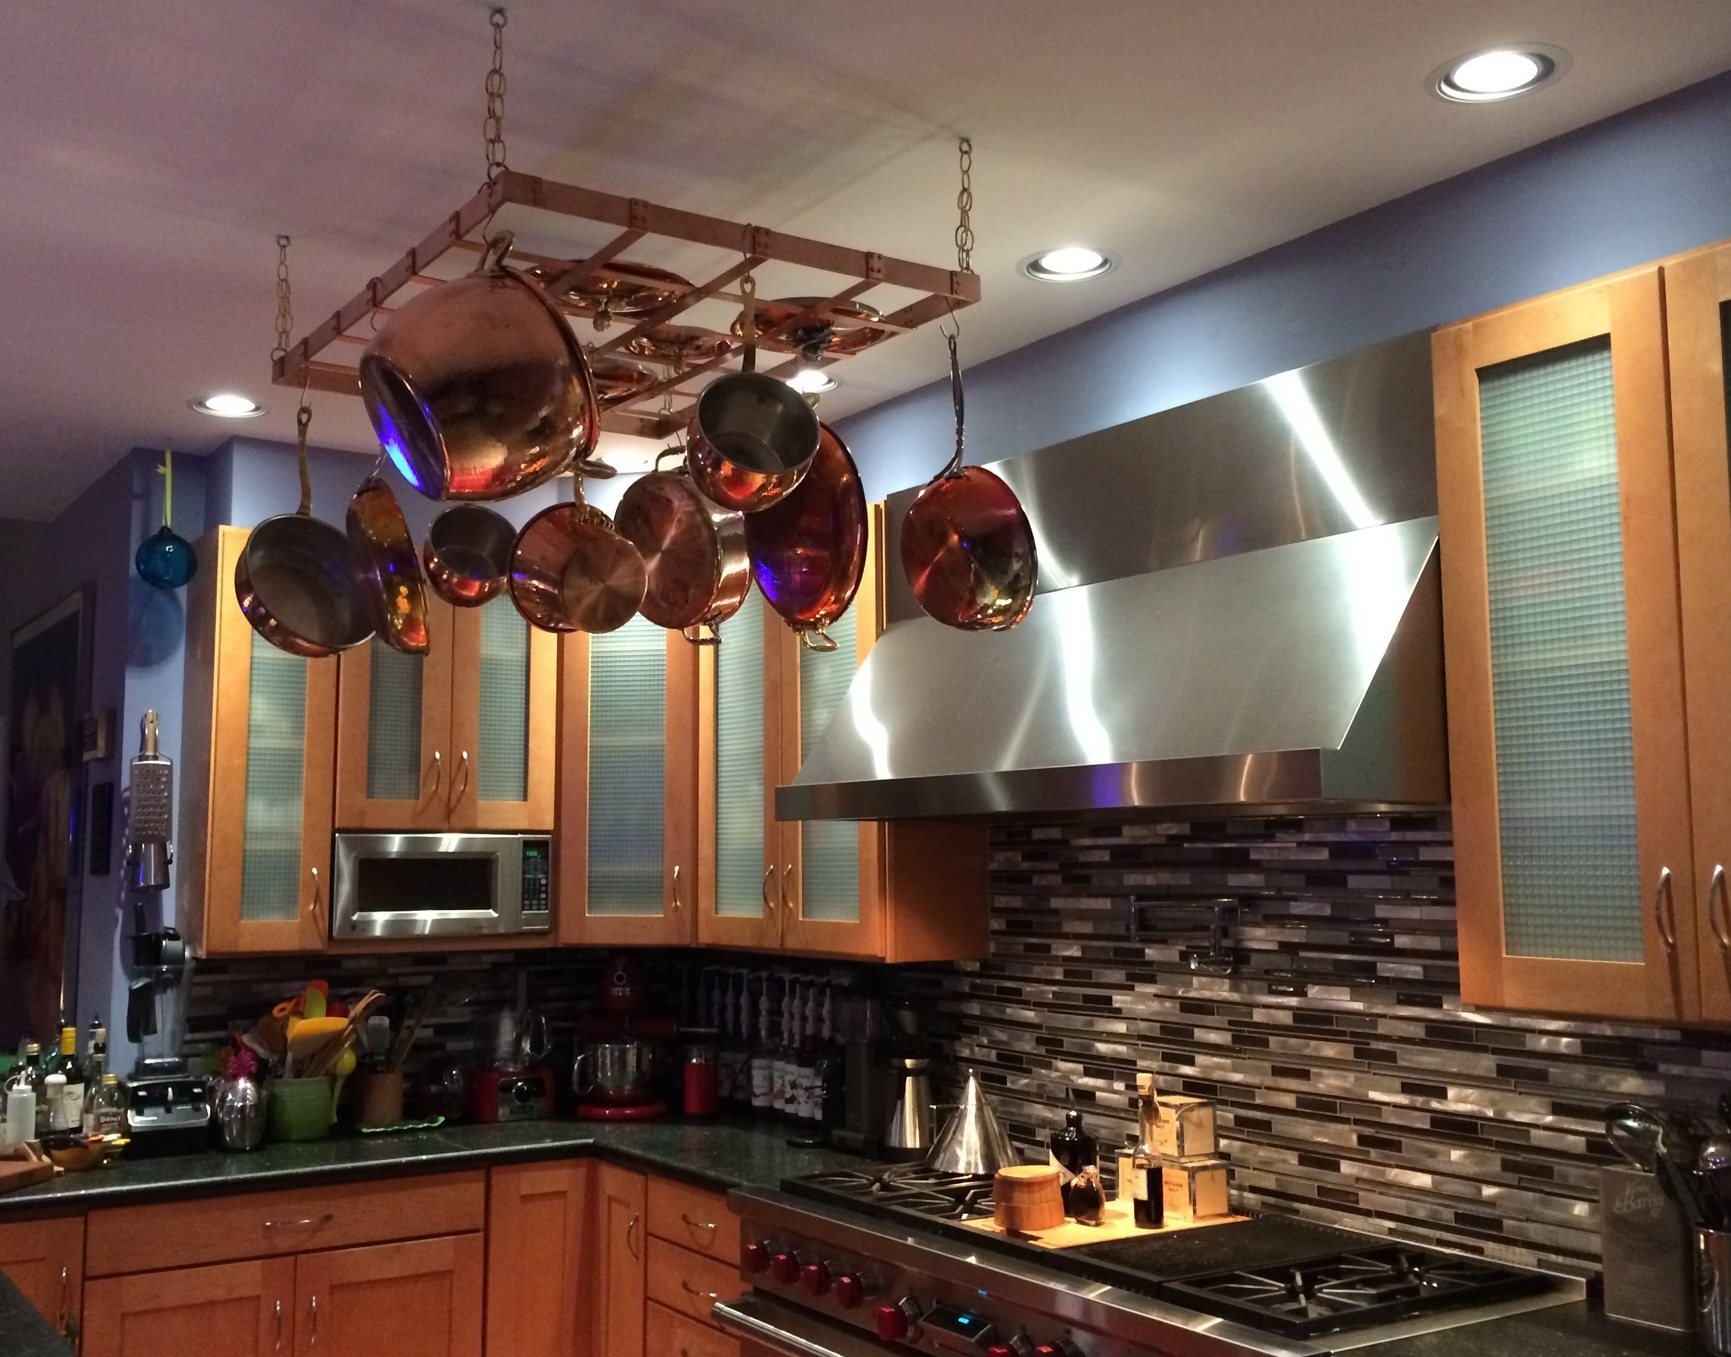 Pro Grade Copper Pot Rack, Heavy Duty